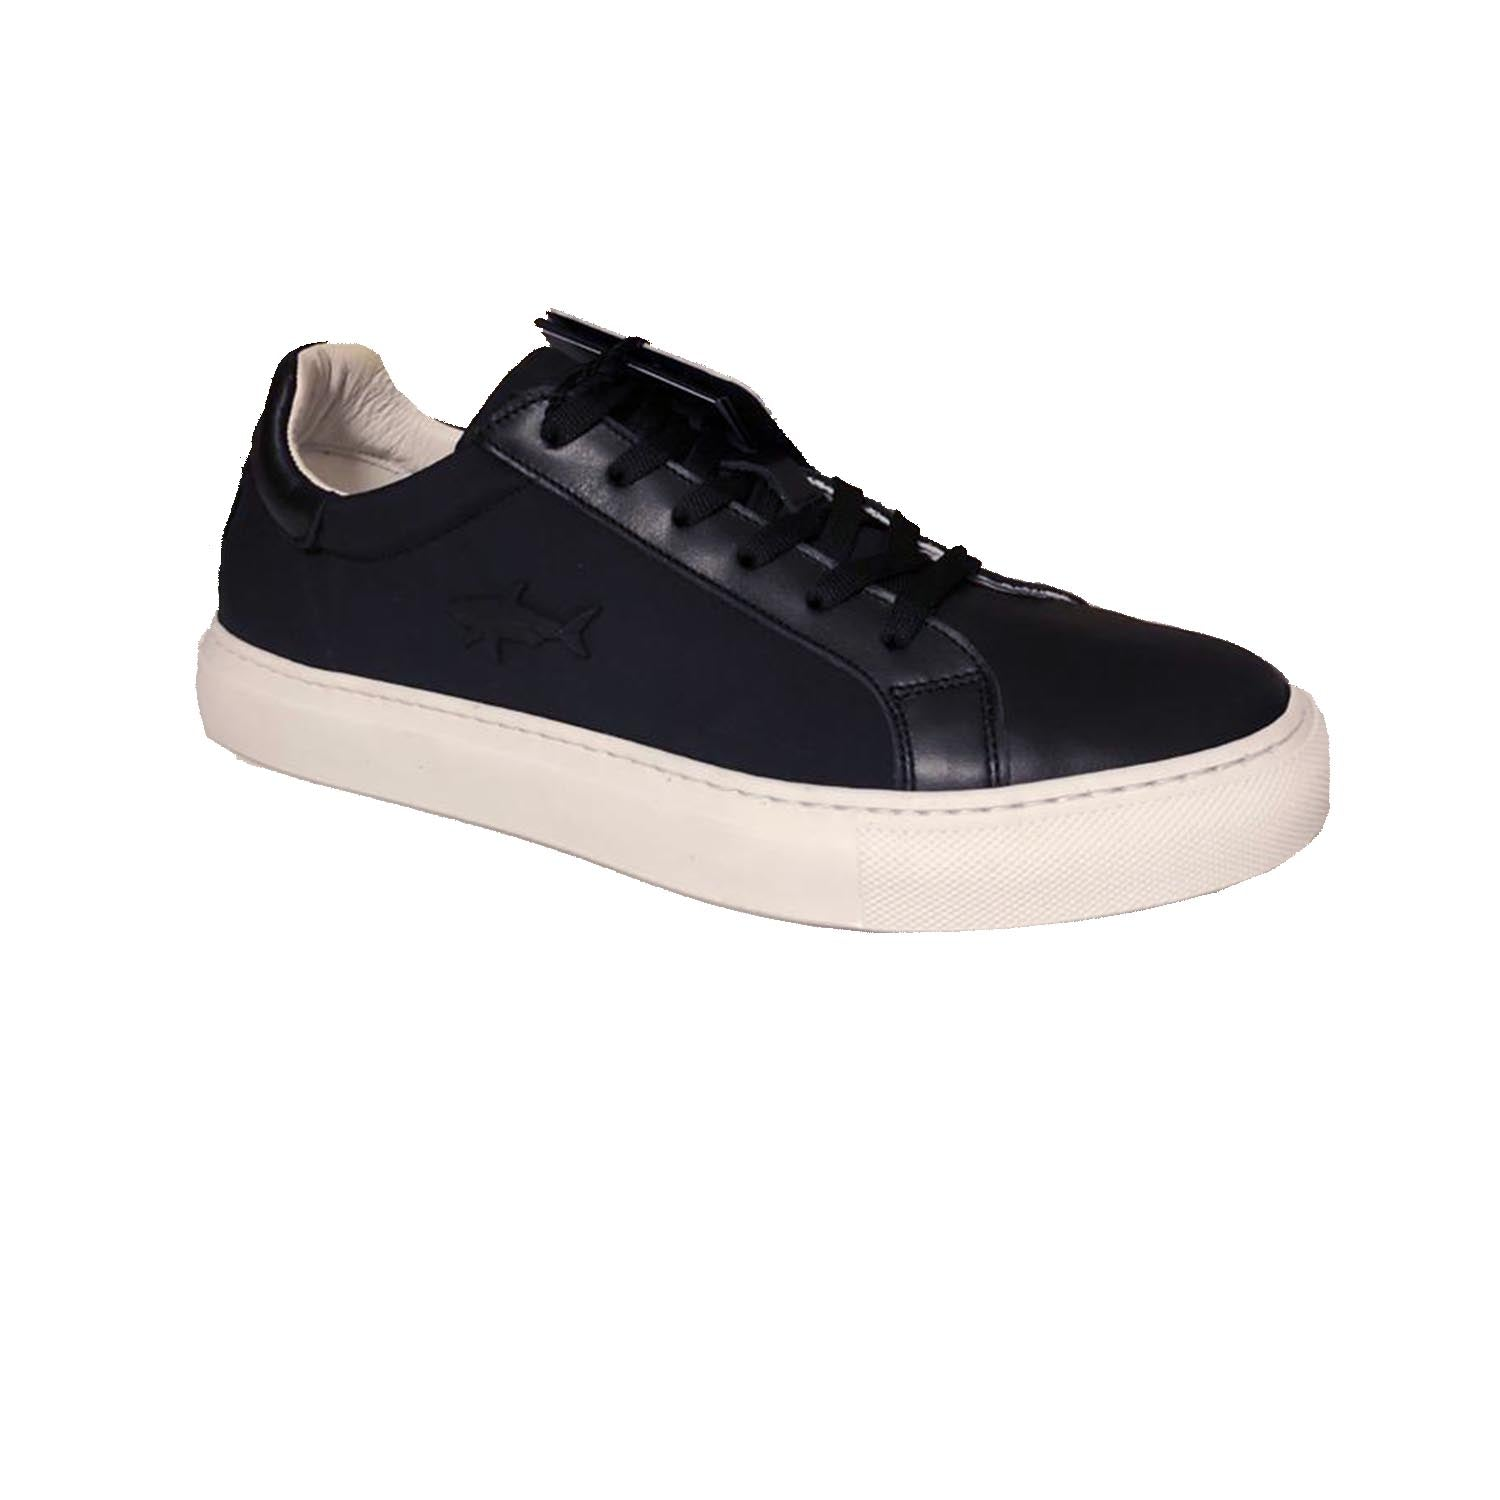 Paul & Shark Lace up Low Top Black Trainer